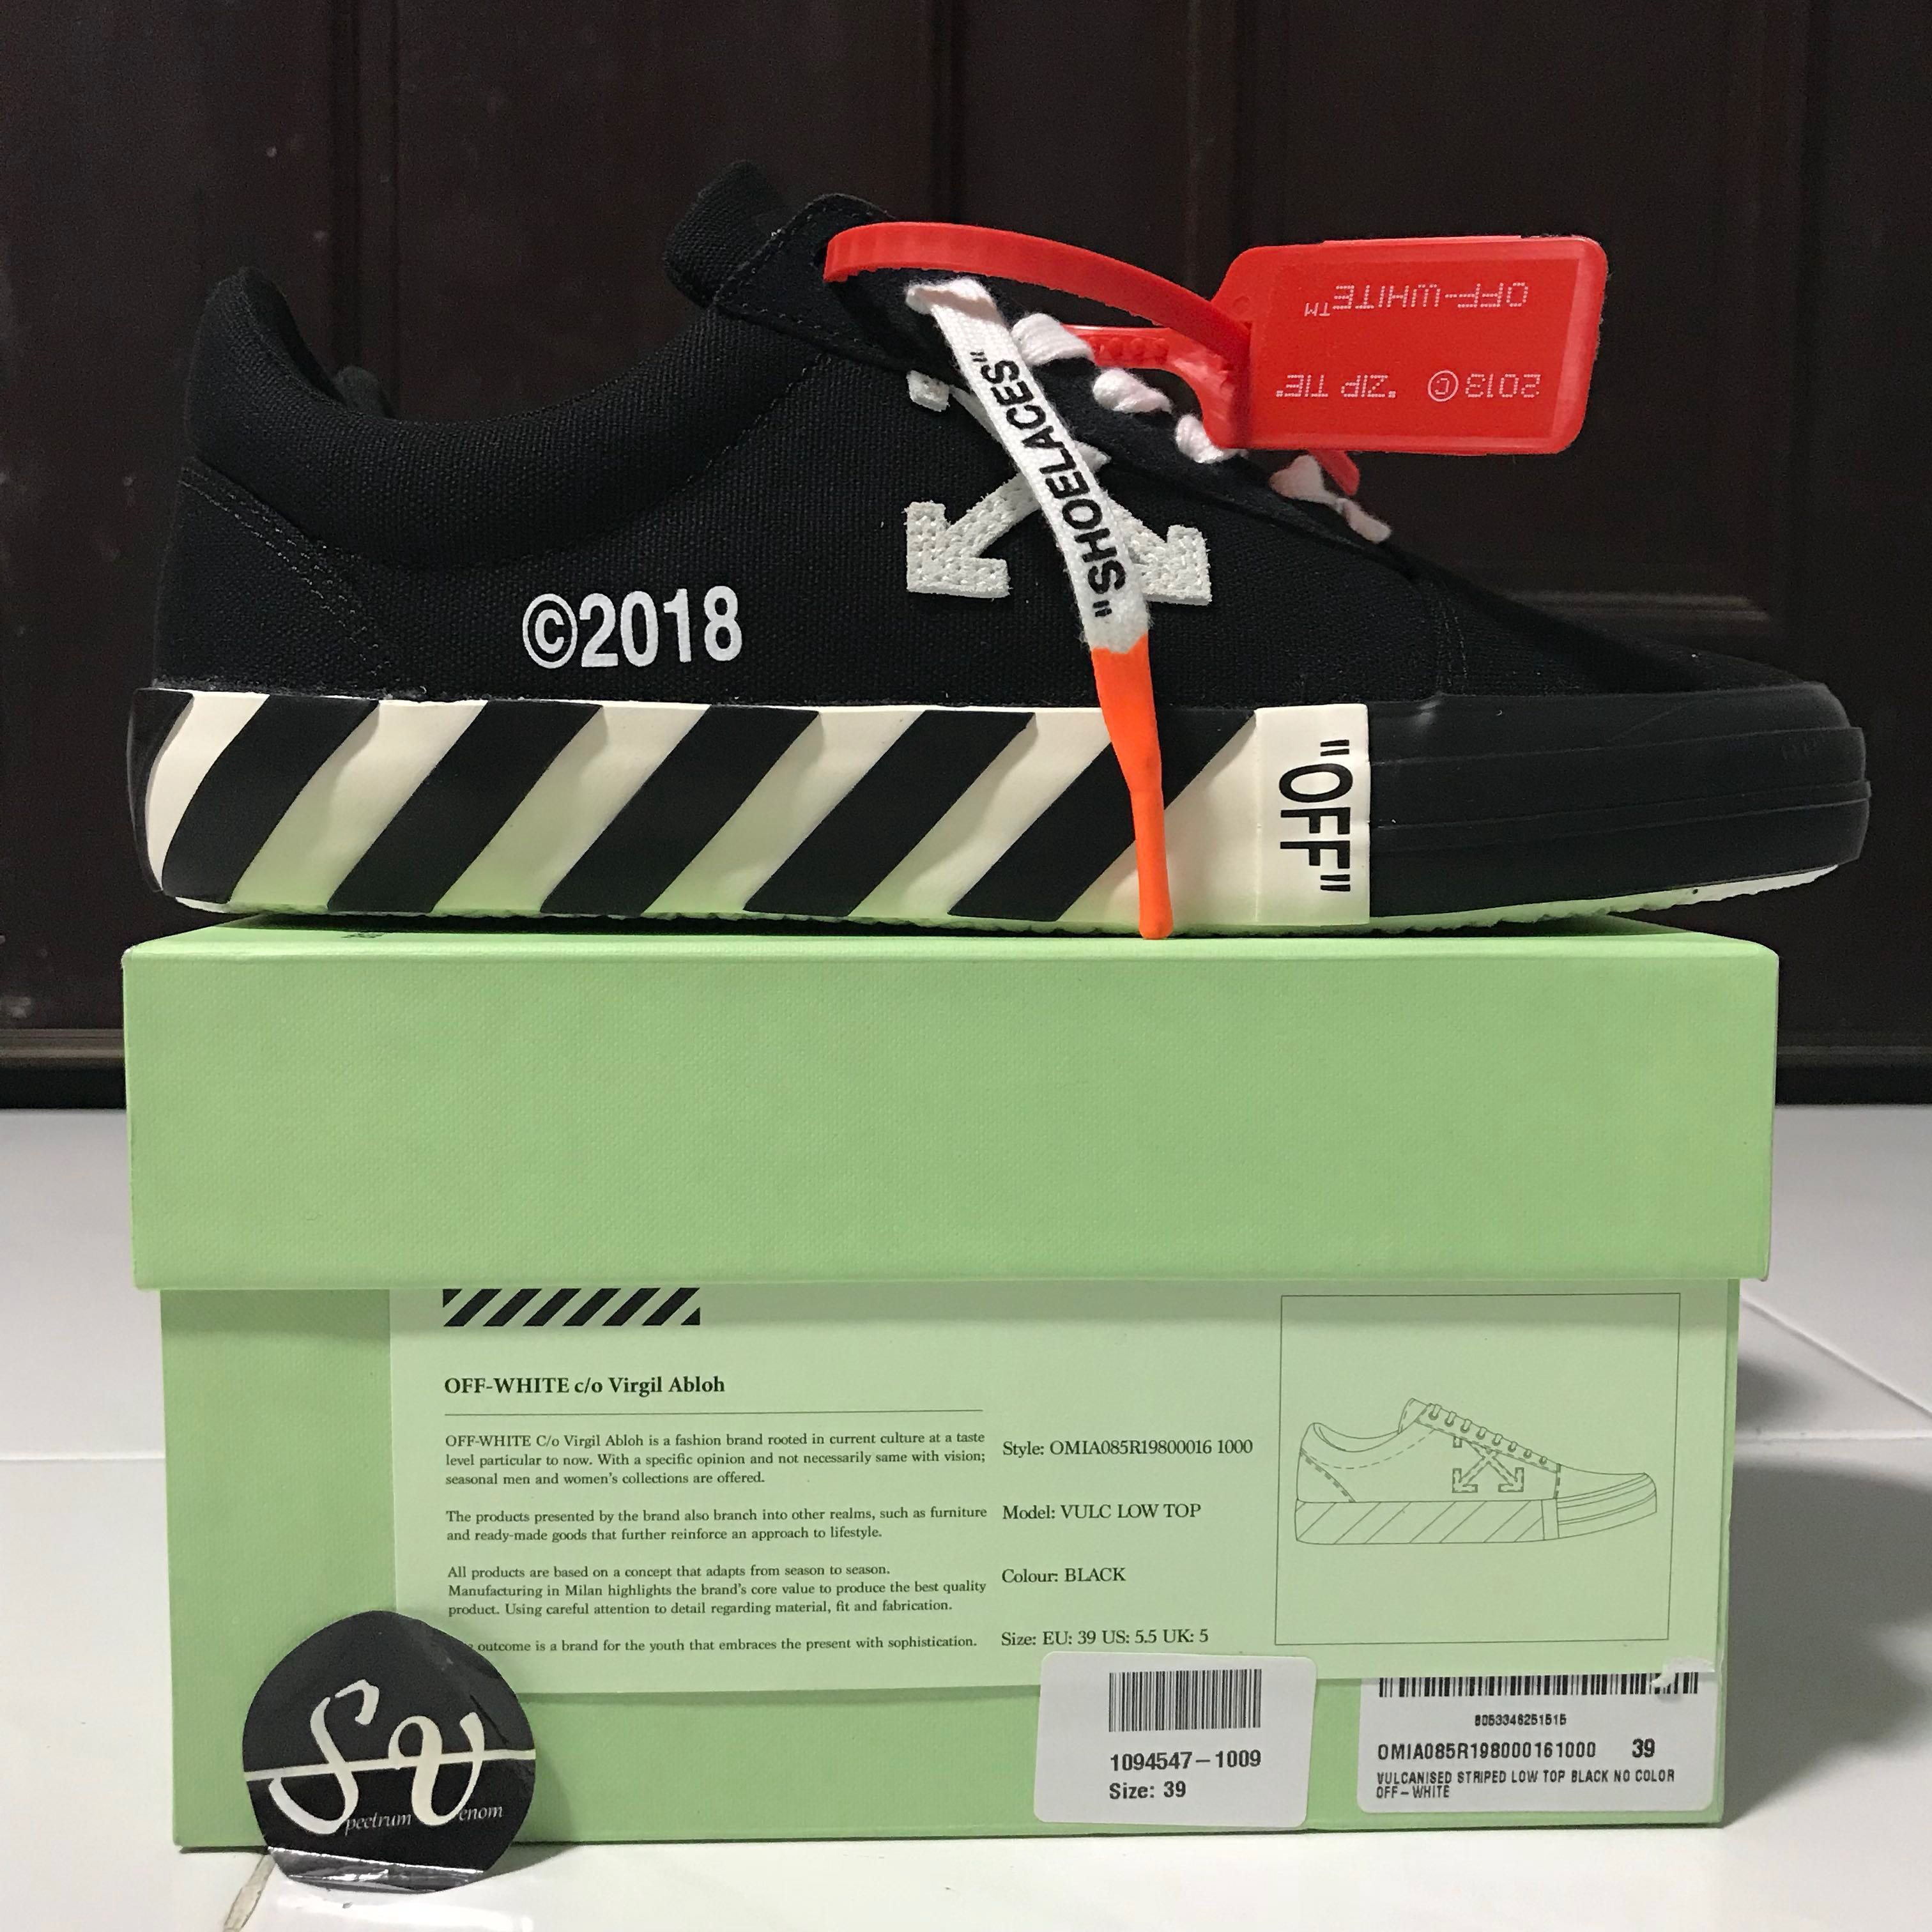 d8723b40 Off White Vulc Low Top Canvas Sneakers Updated Stripes Black, Men's  Fashion, Footwear, Sneakers on Carousell